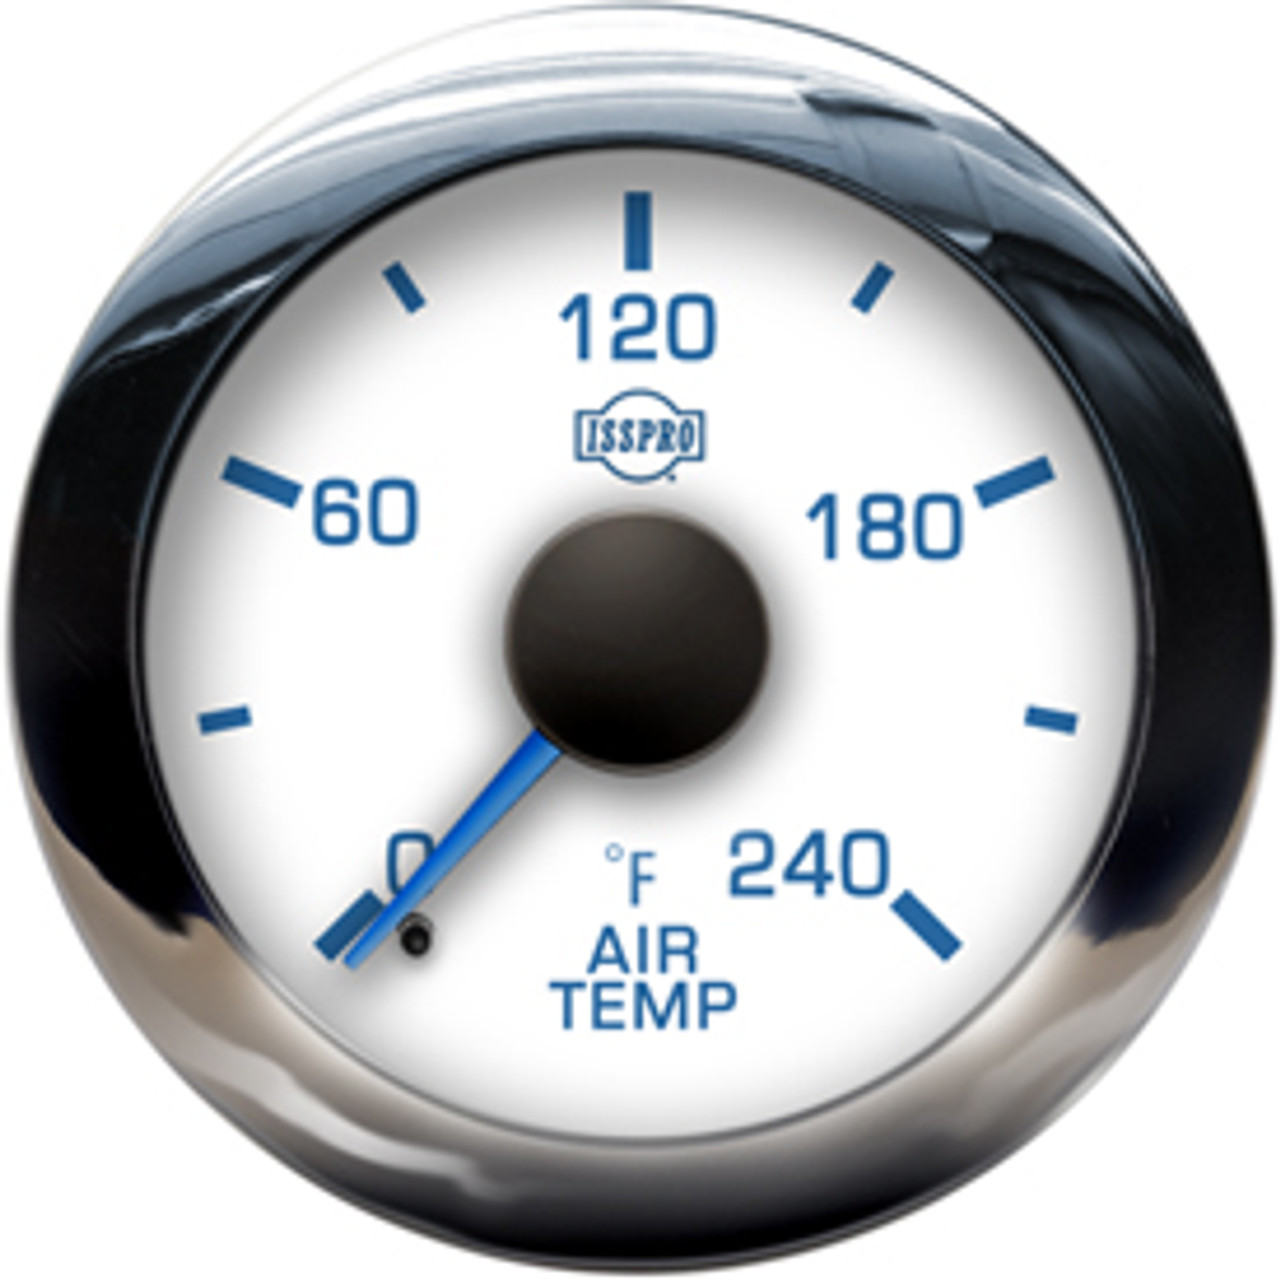 R89966 Temperature Sender Isspro Gauges